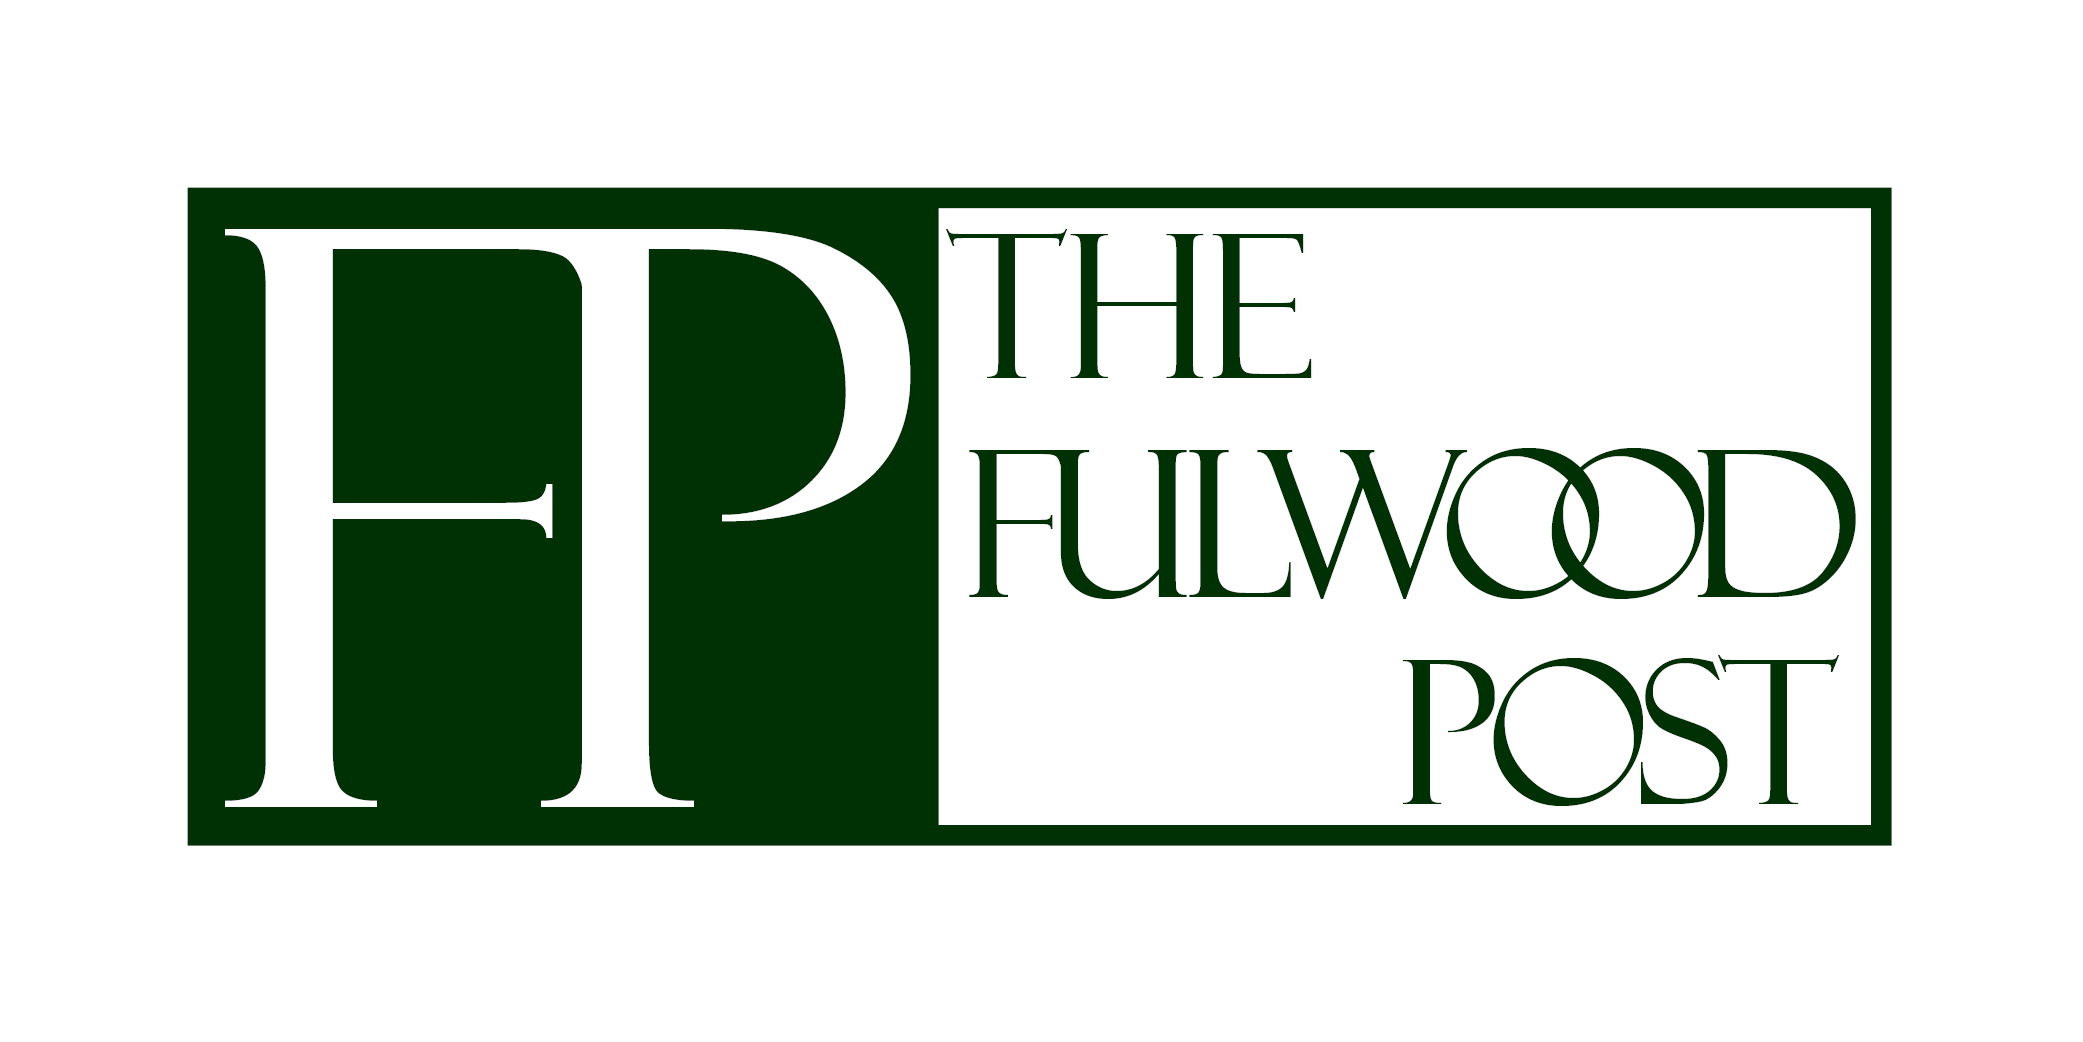 The Fulwood Post